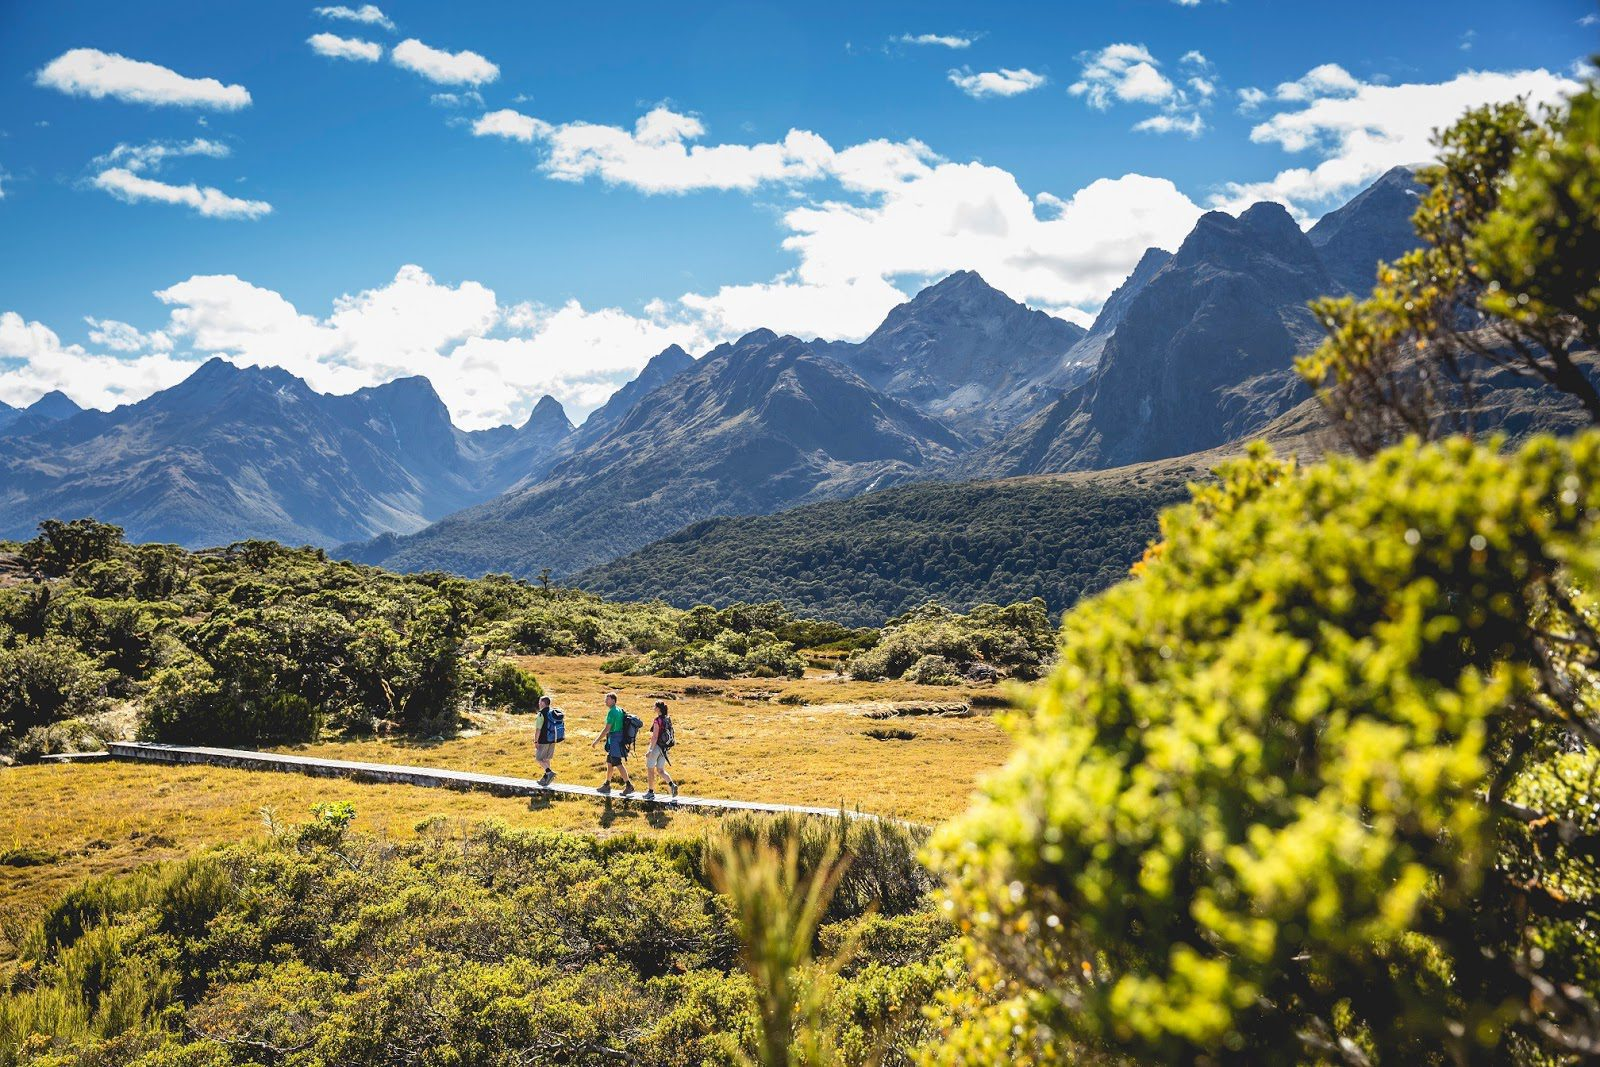 three hikers on a luxury walk traverse a wooden path near the South Island's Main Divide with jagged peaks in the distance